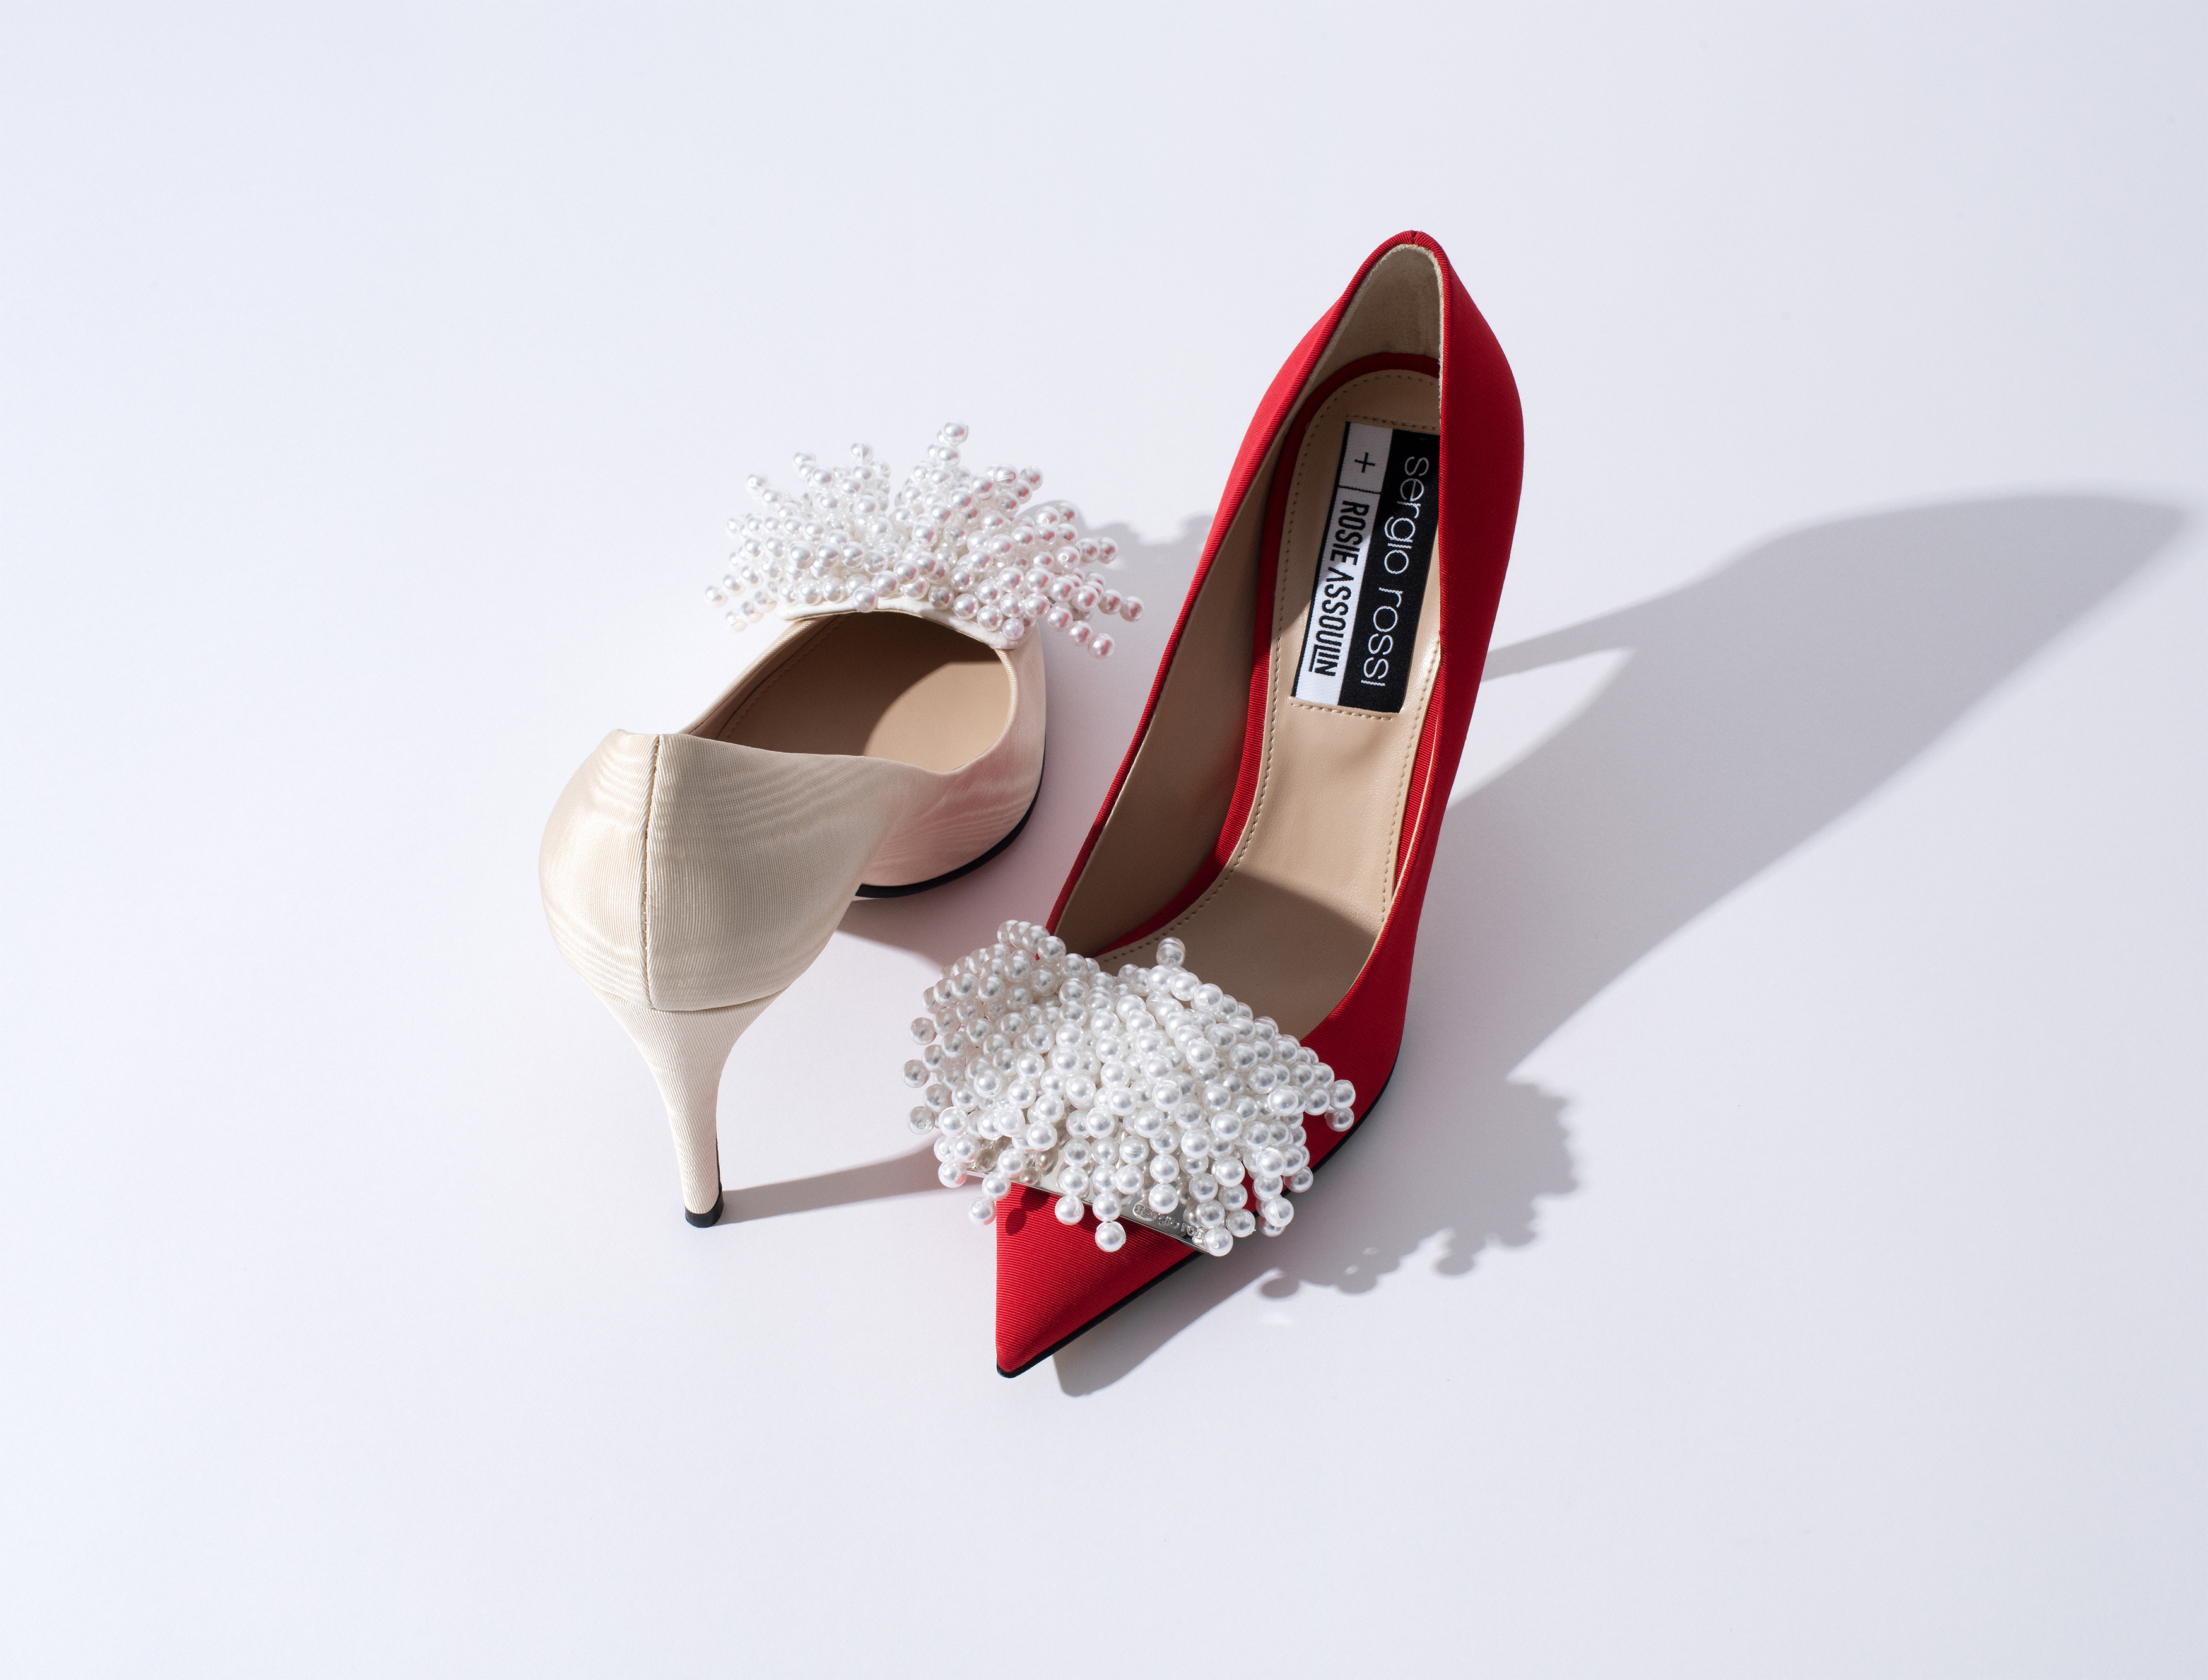 Pumps from the Sergio Rossi + Rosie Assoulin capsule collection.